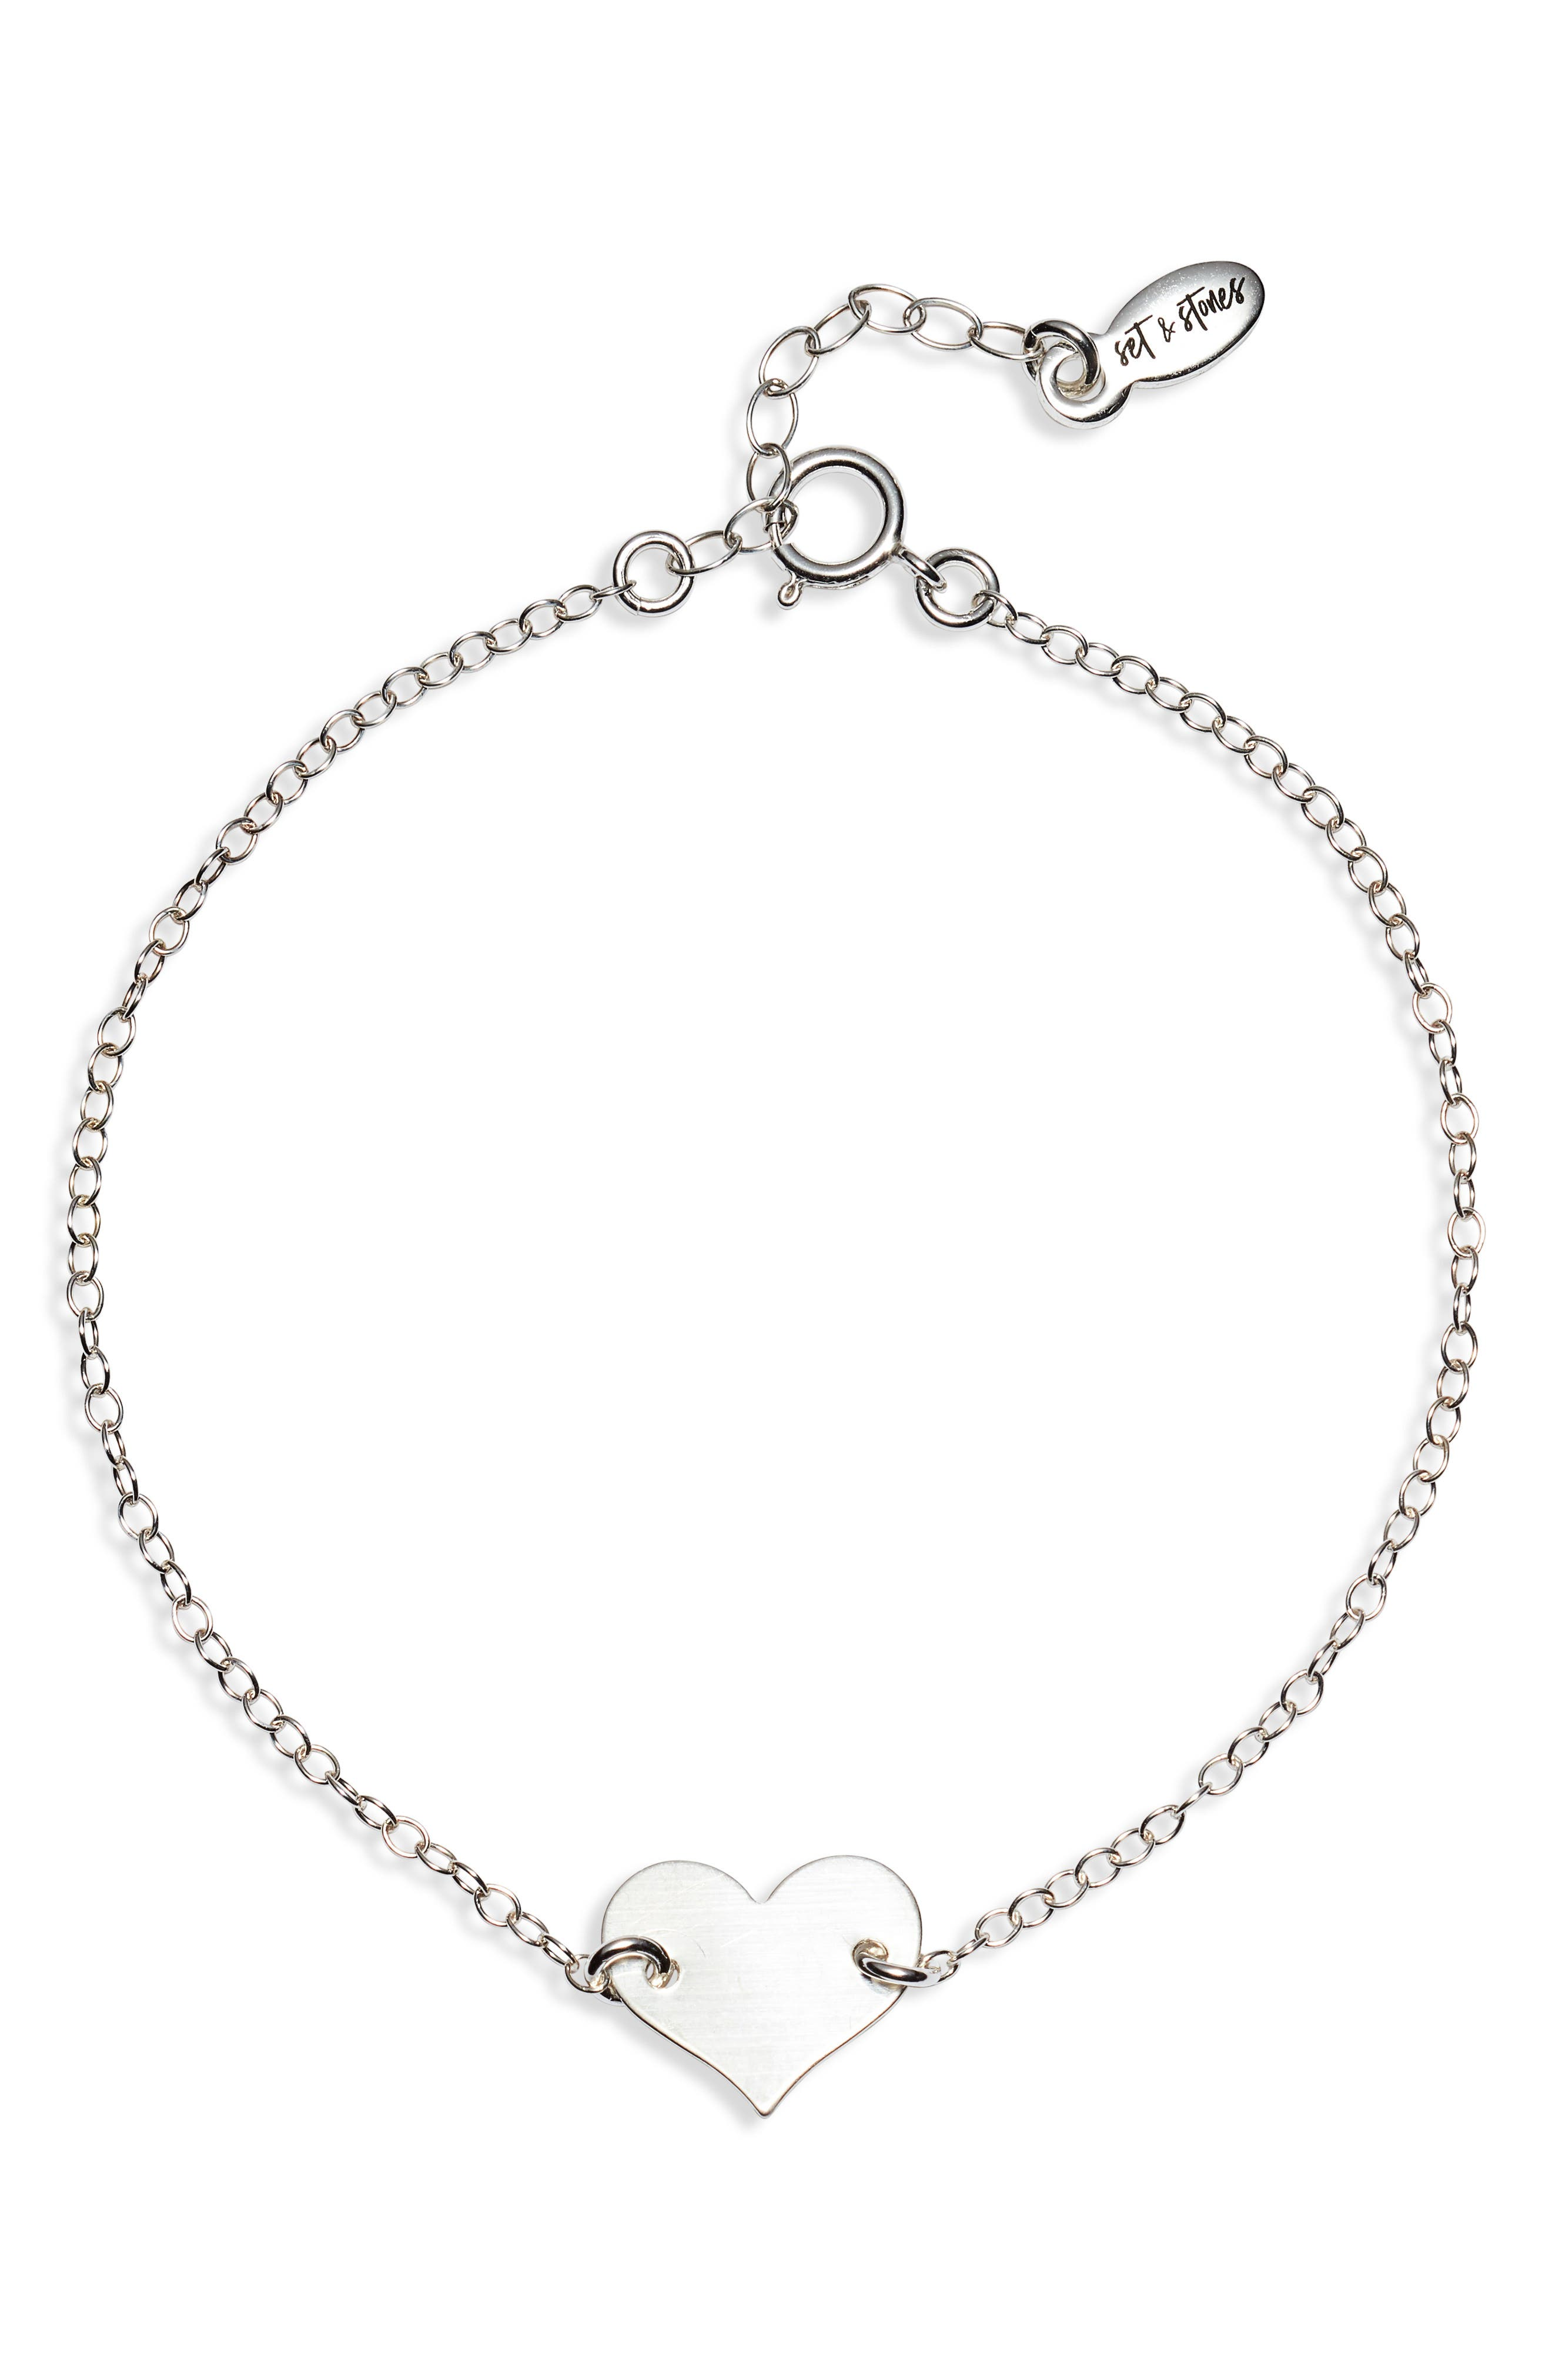 This dainty chain bracelet boasts a tiny heart, making it a cute and sentimental accessory that looks great alone but easily layers. Style Name: Set & Stones Jenny Heart Bracelet. Style Number: 6057561. Available in stores.